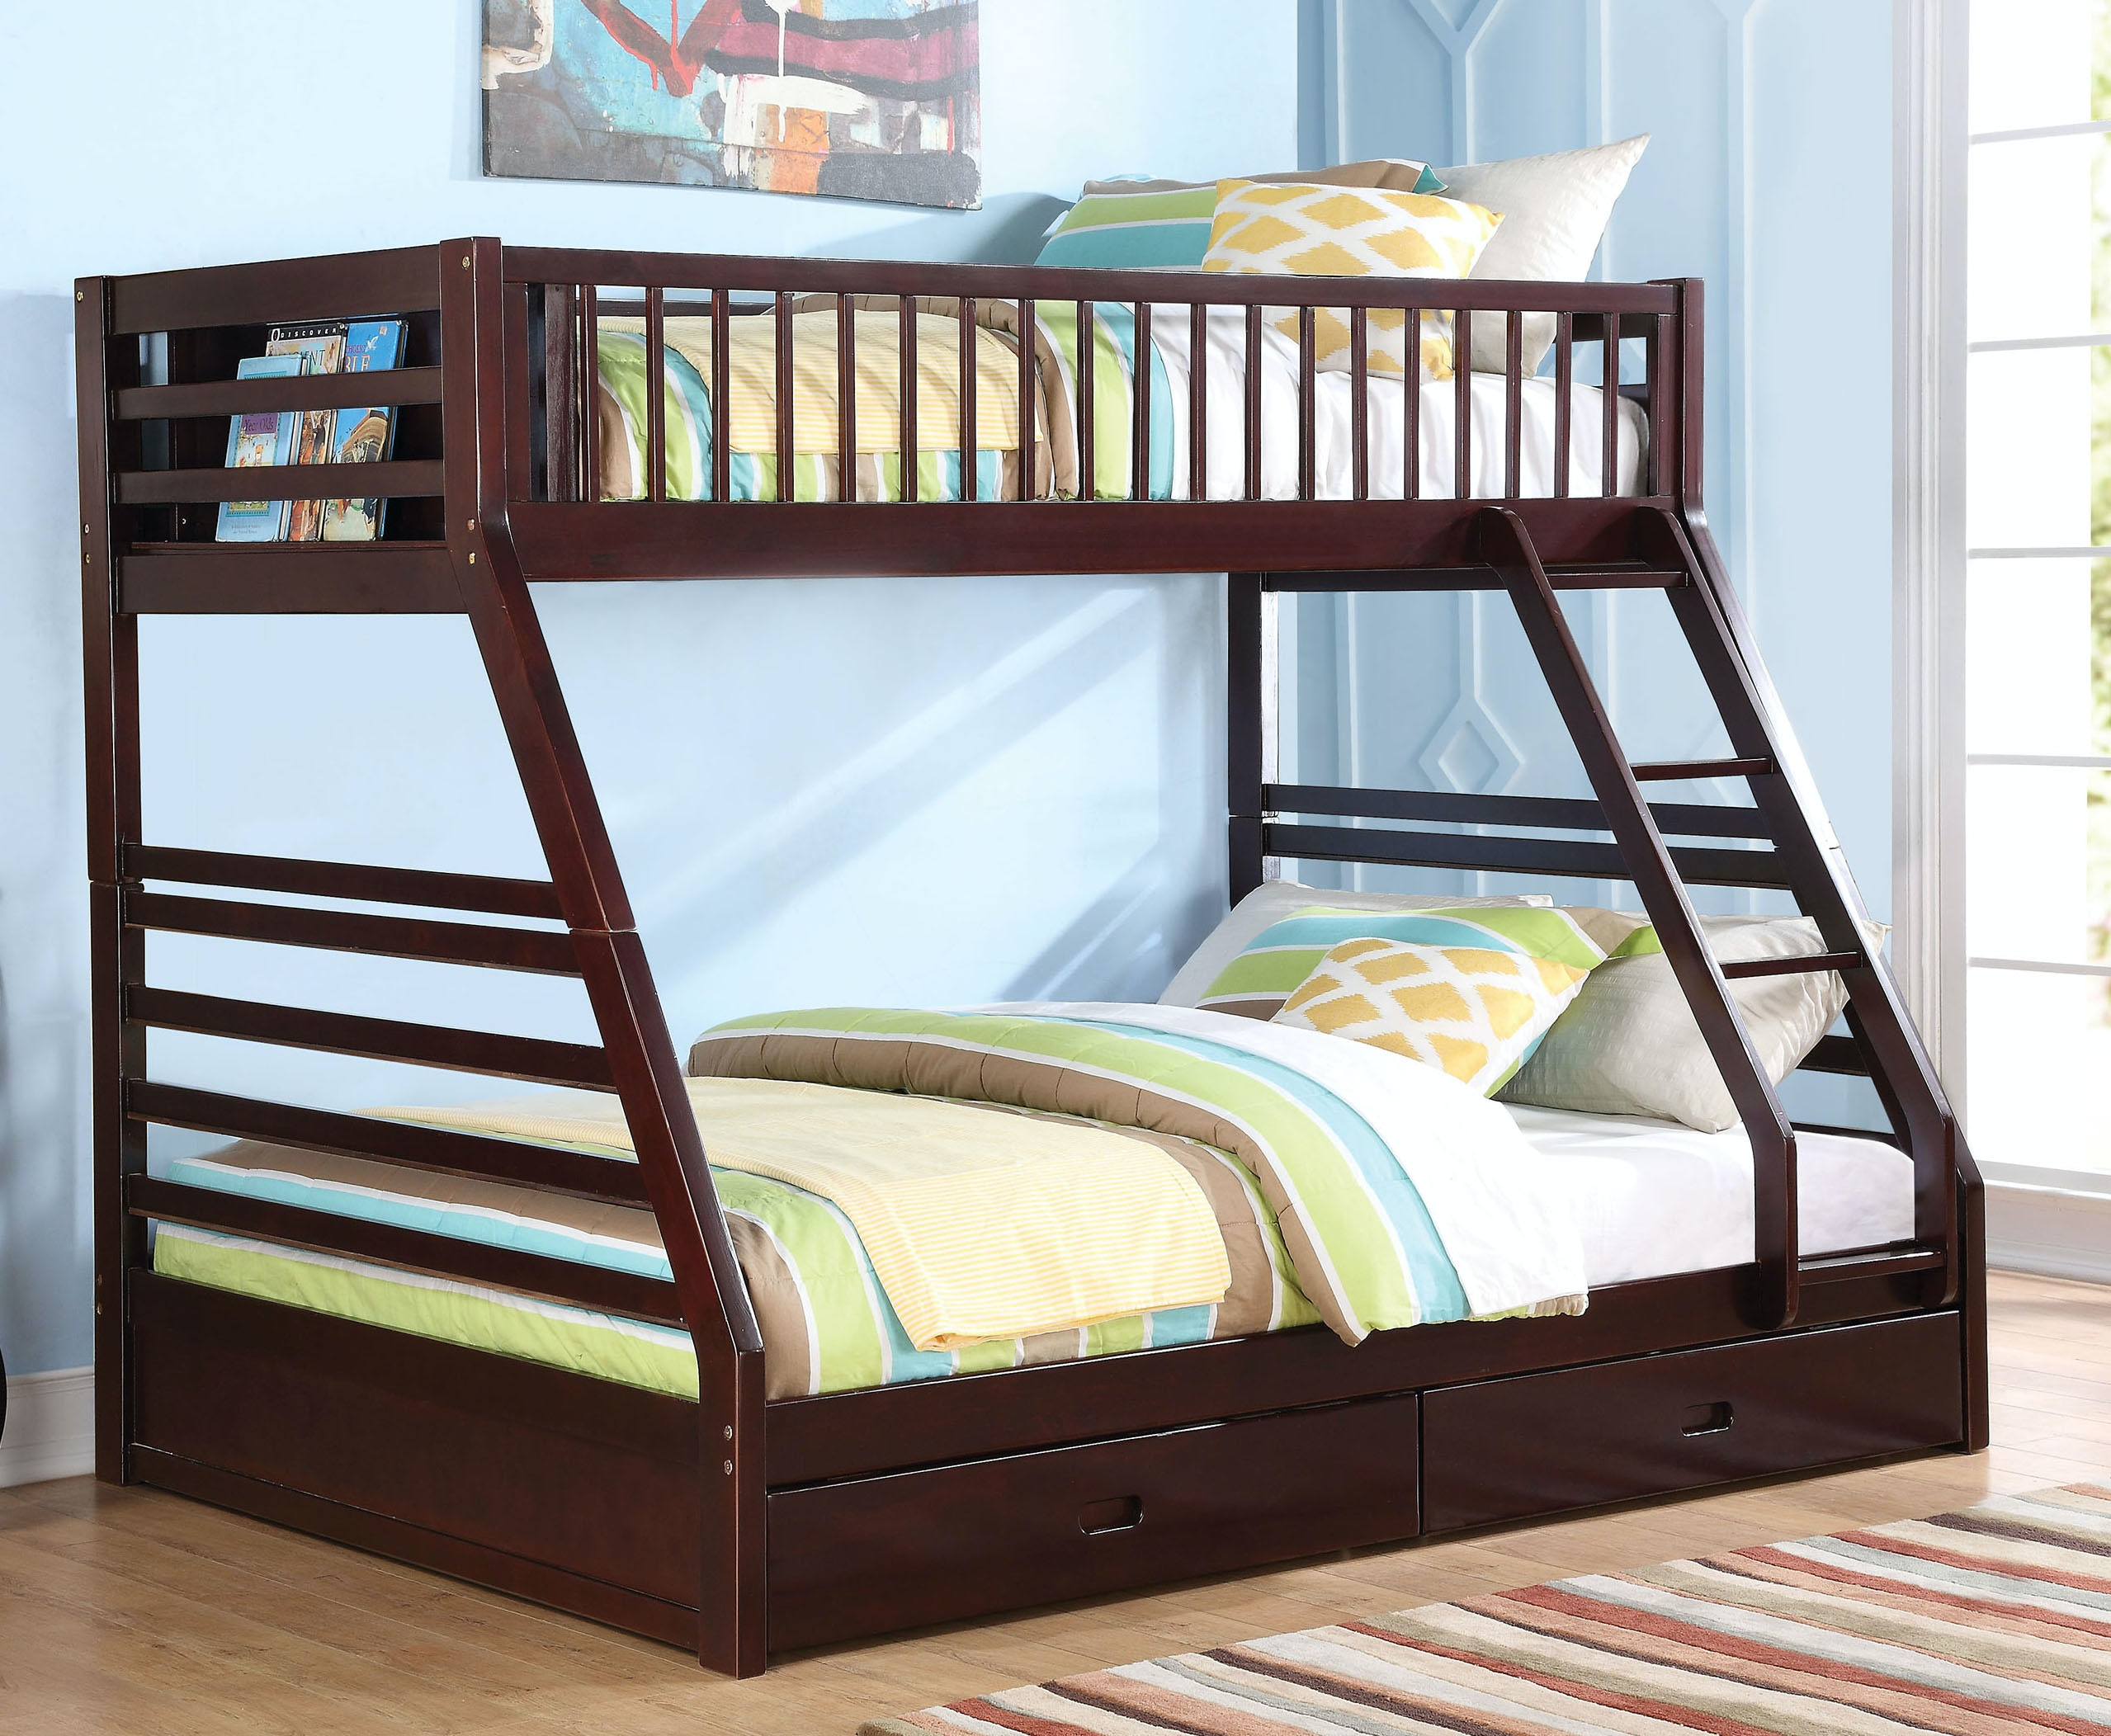 Acme Furniture Youth Jason Twin Xl Over Queen Bunk Bed With Drawer